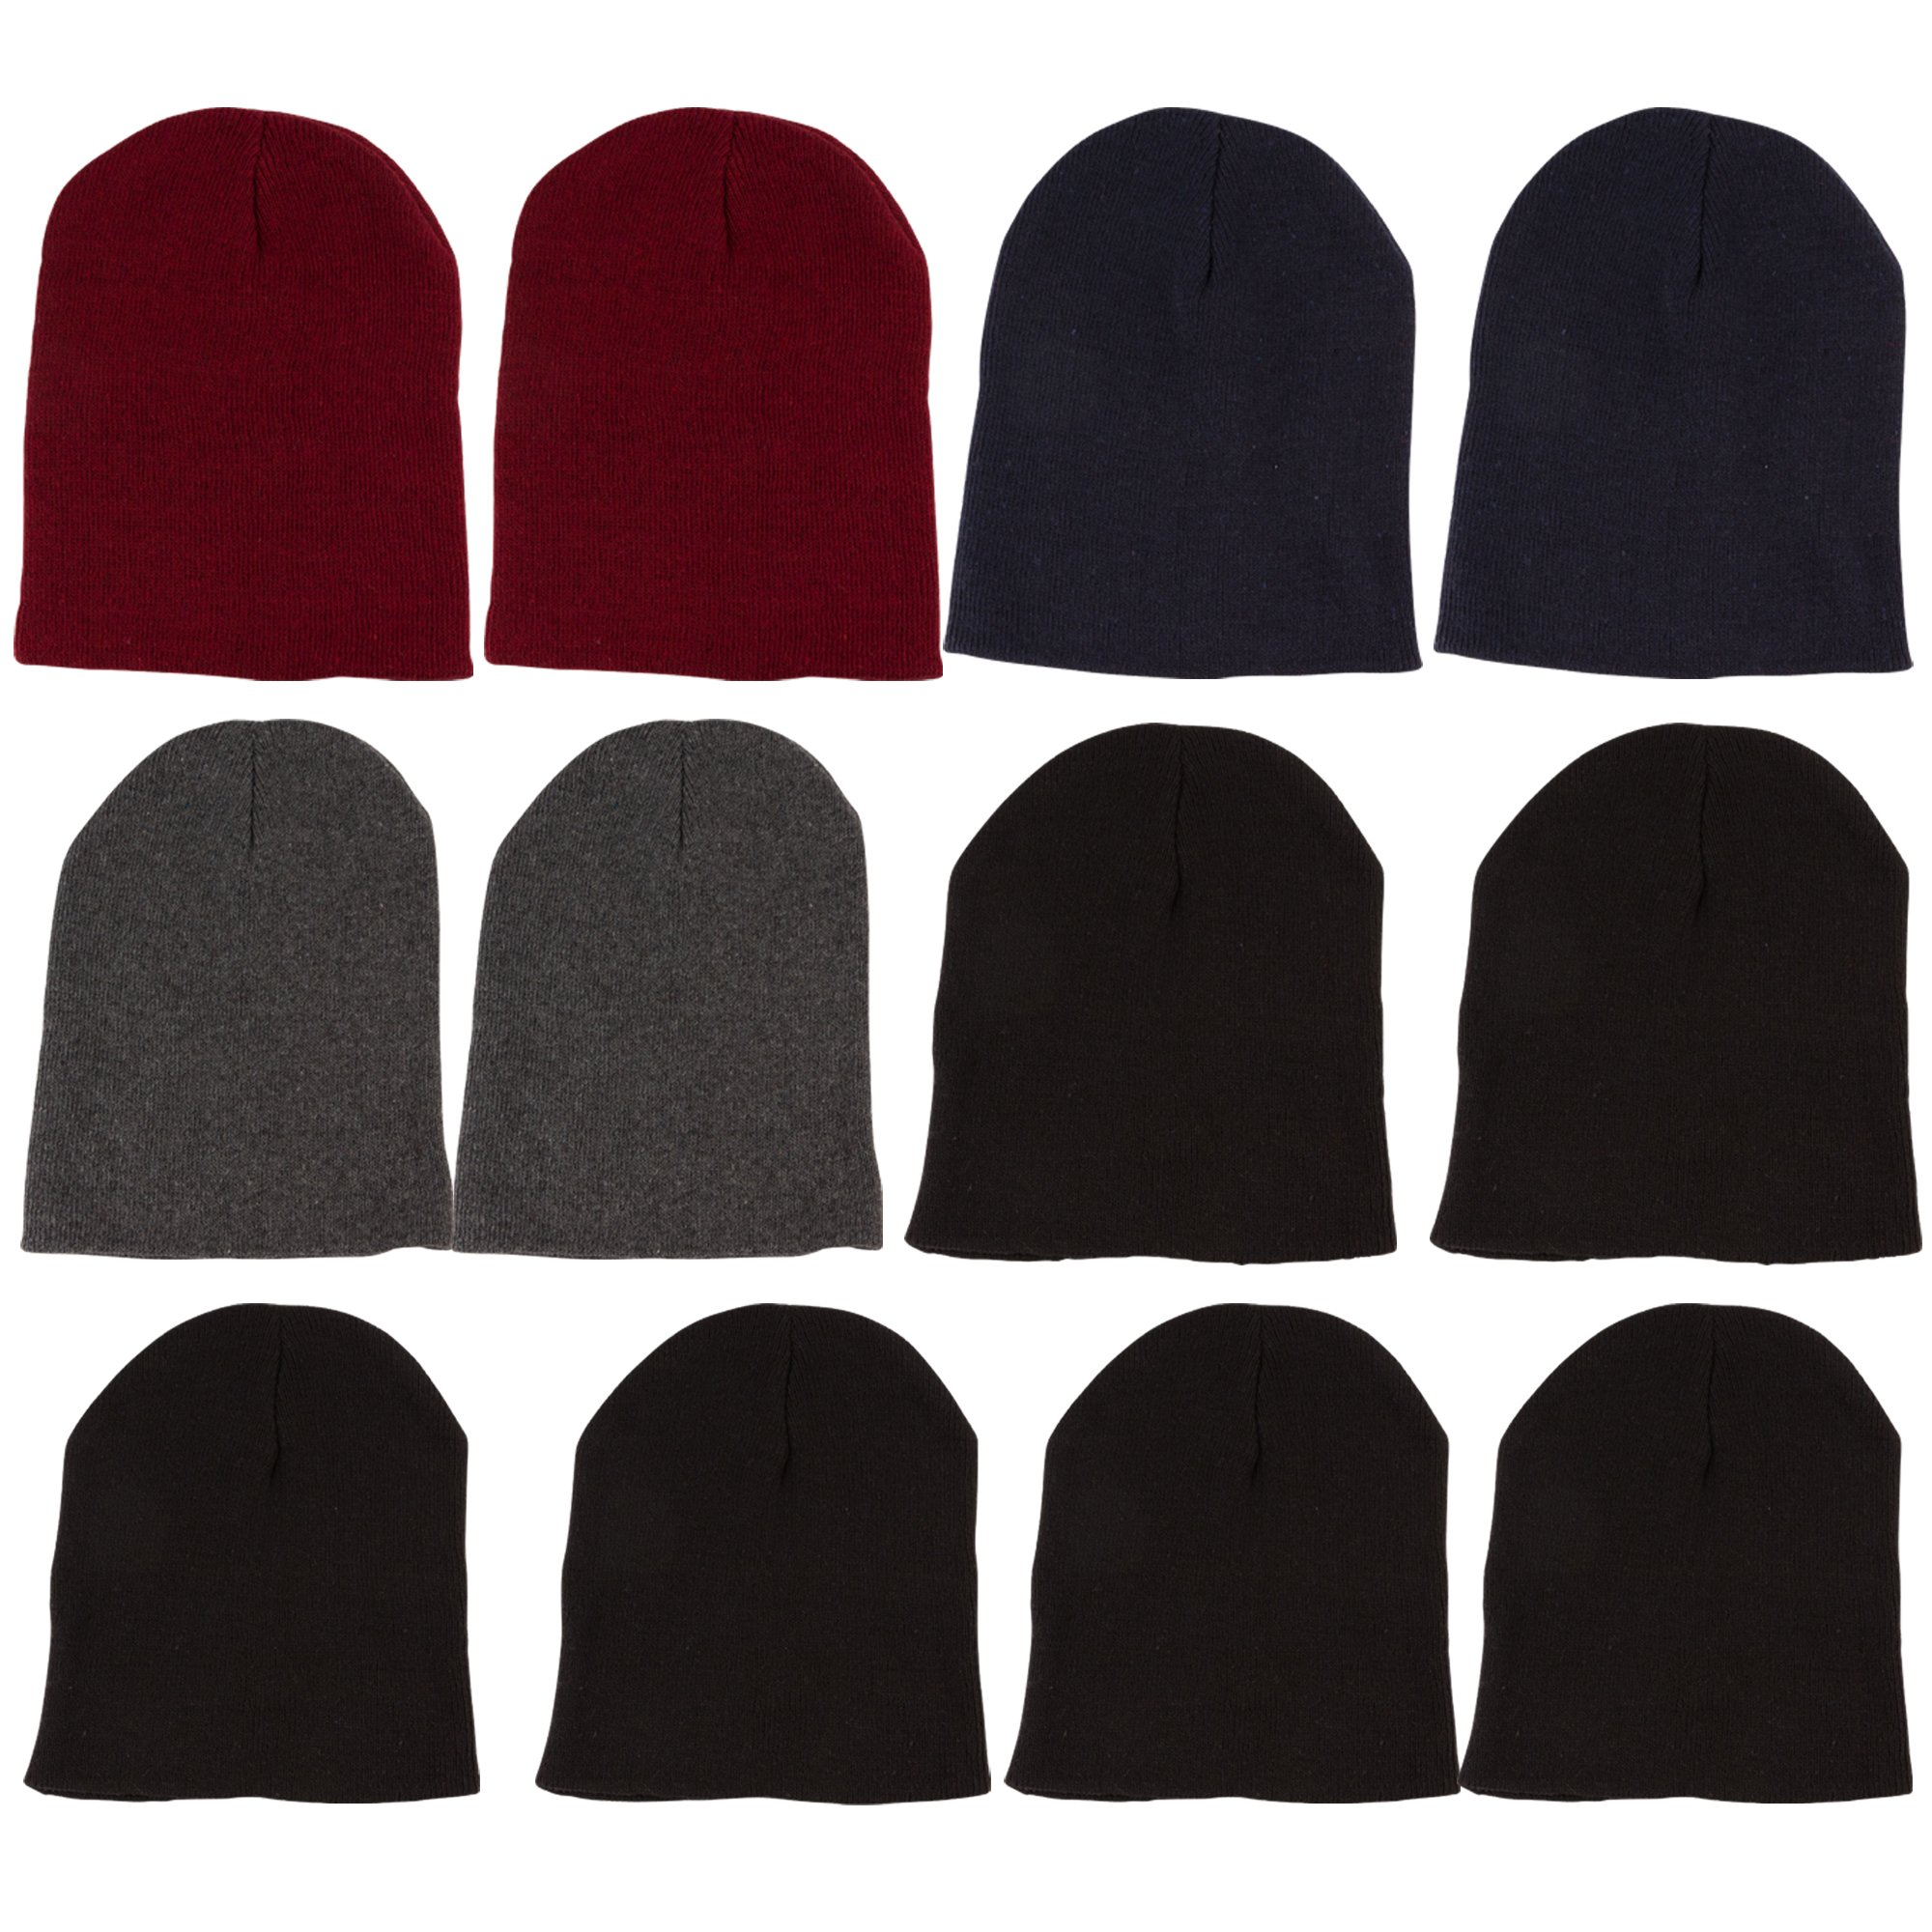 Yacht & Smith Mens Womens Warm Winter Hats in Assorted Colors, Mens Womens Unisex (12 Pack Assorted Solids (C))